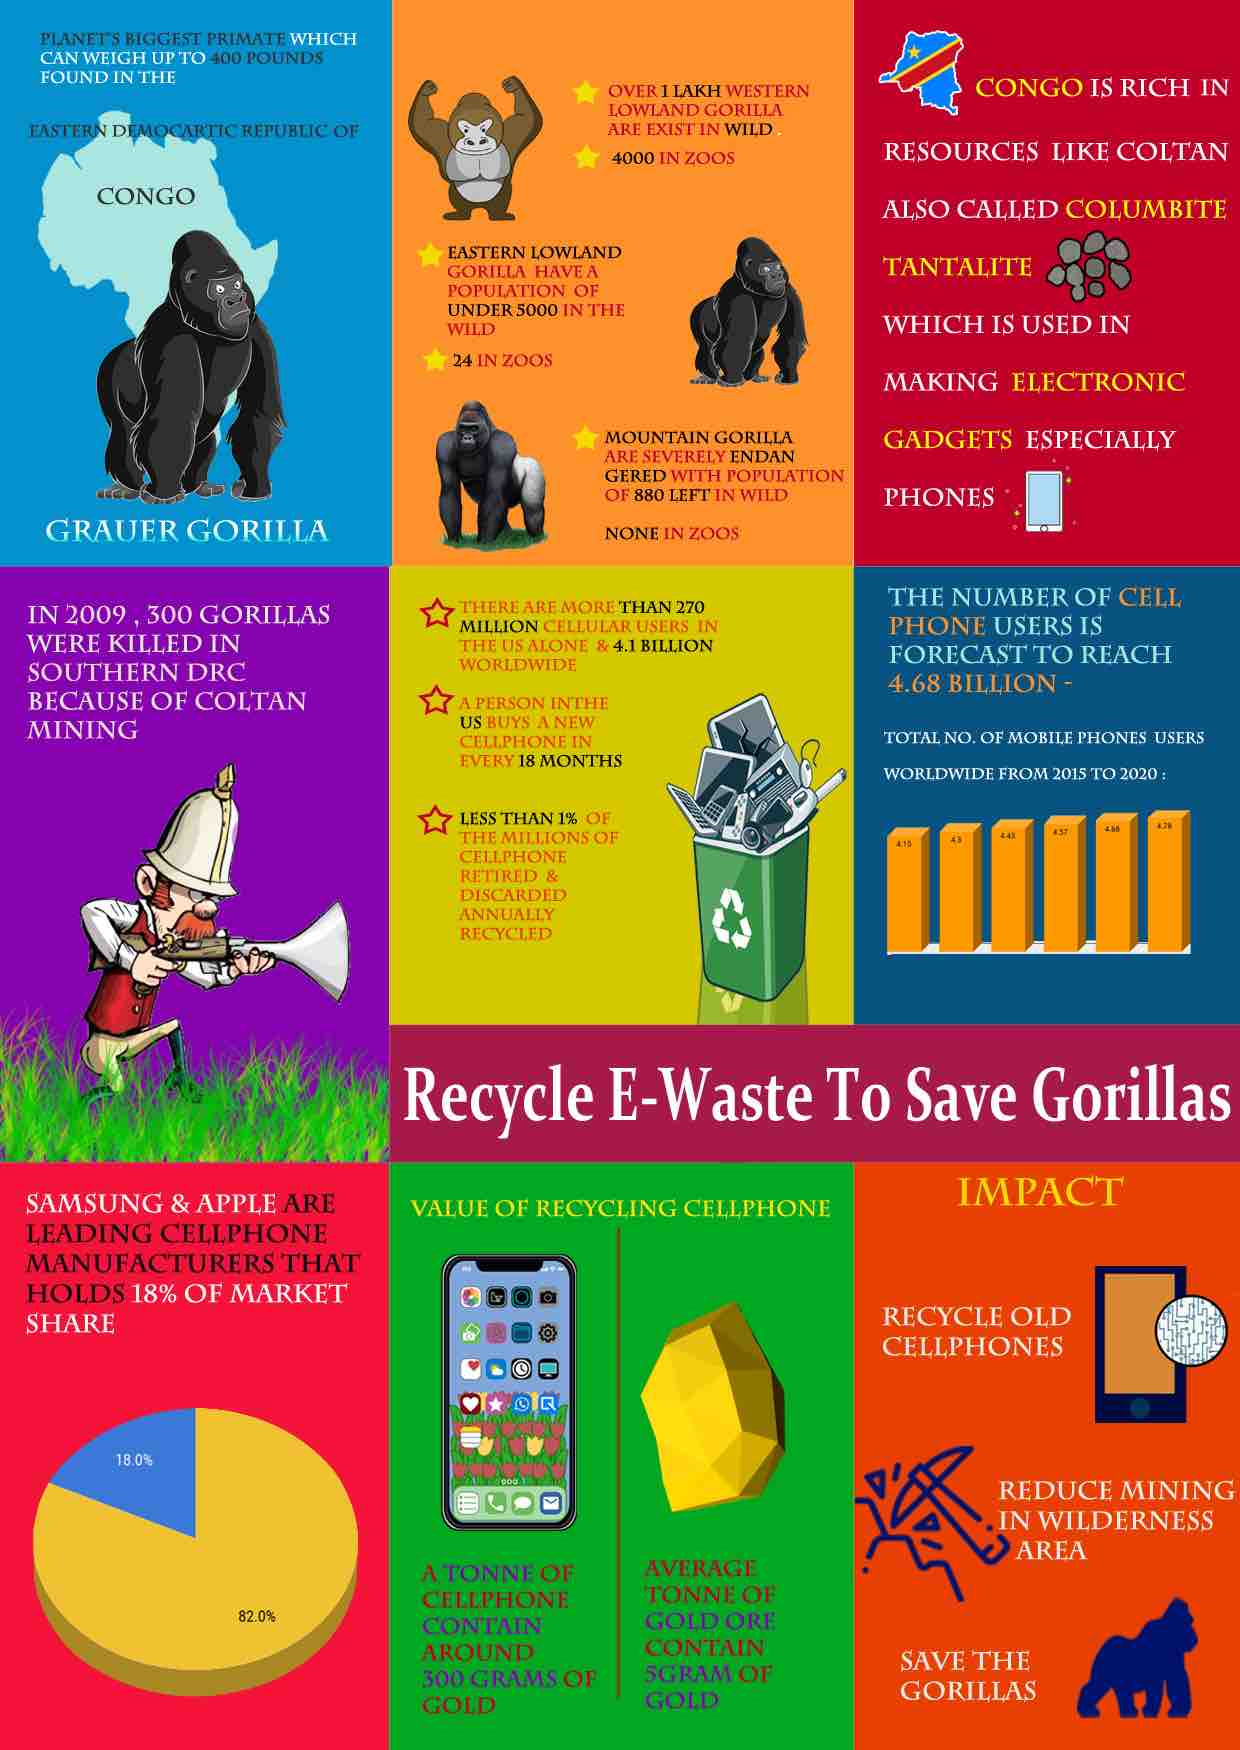 Save the gorillas by recycling e-waste